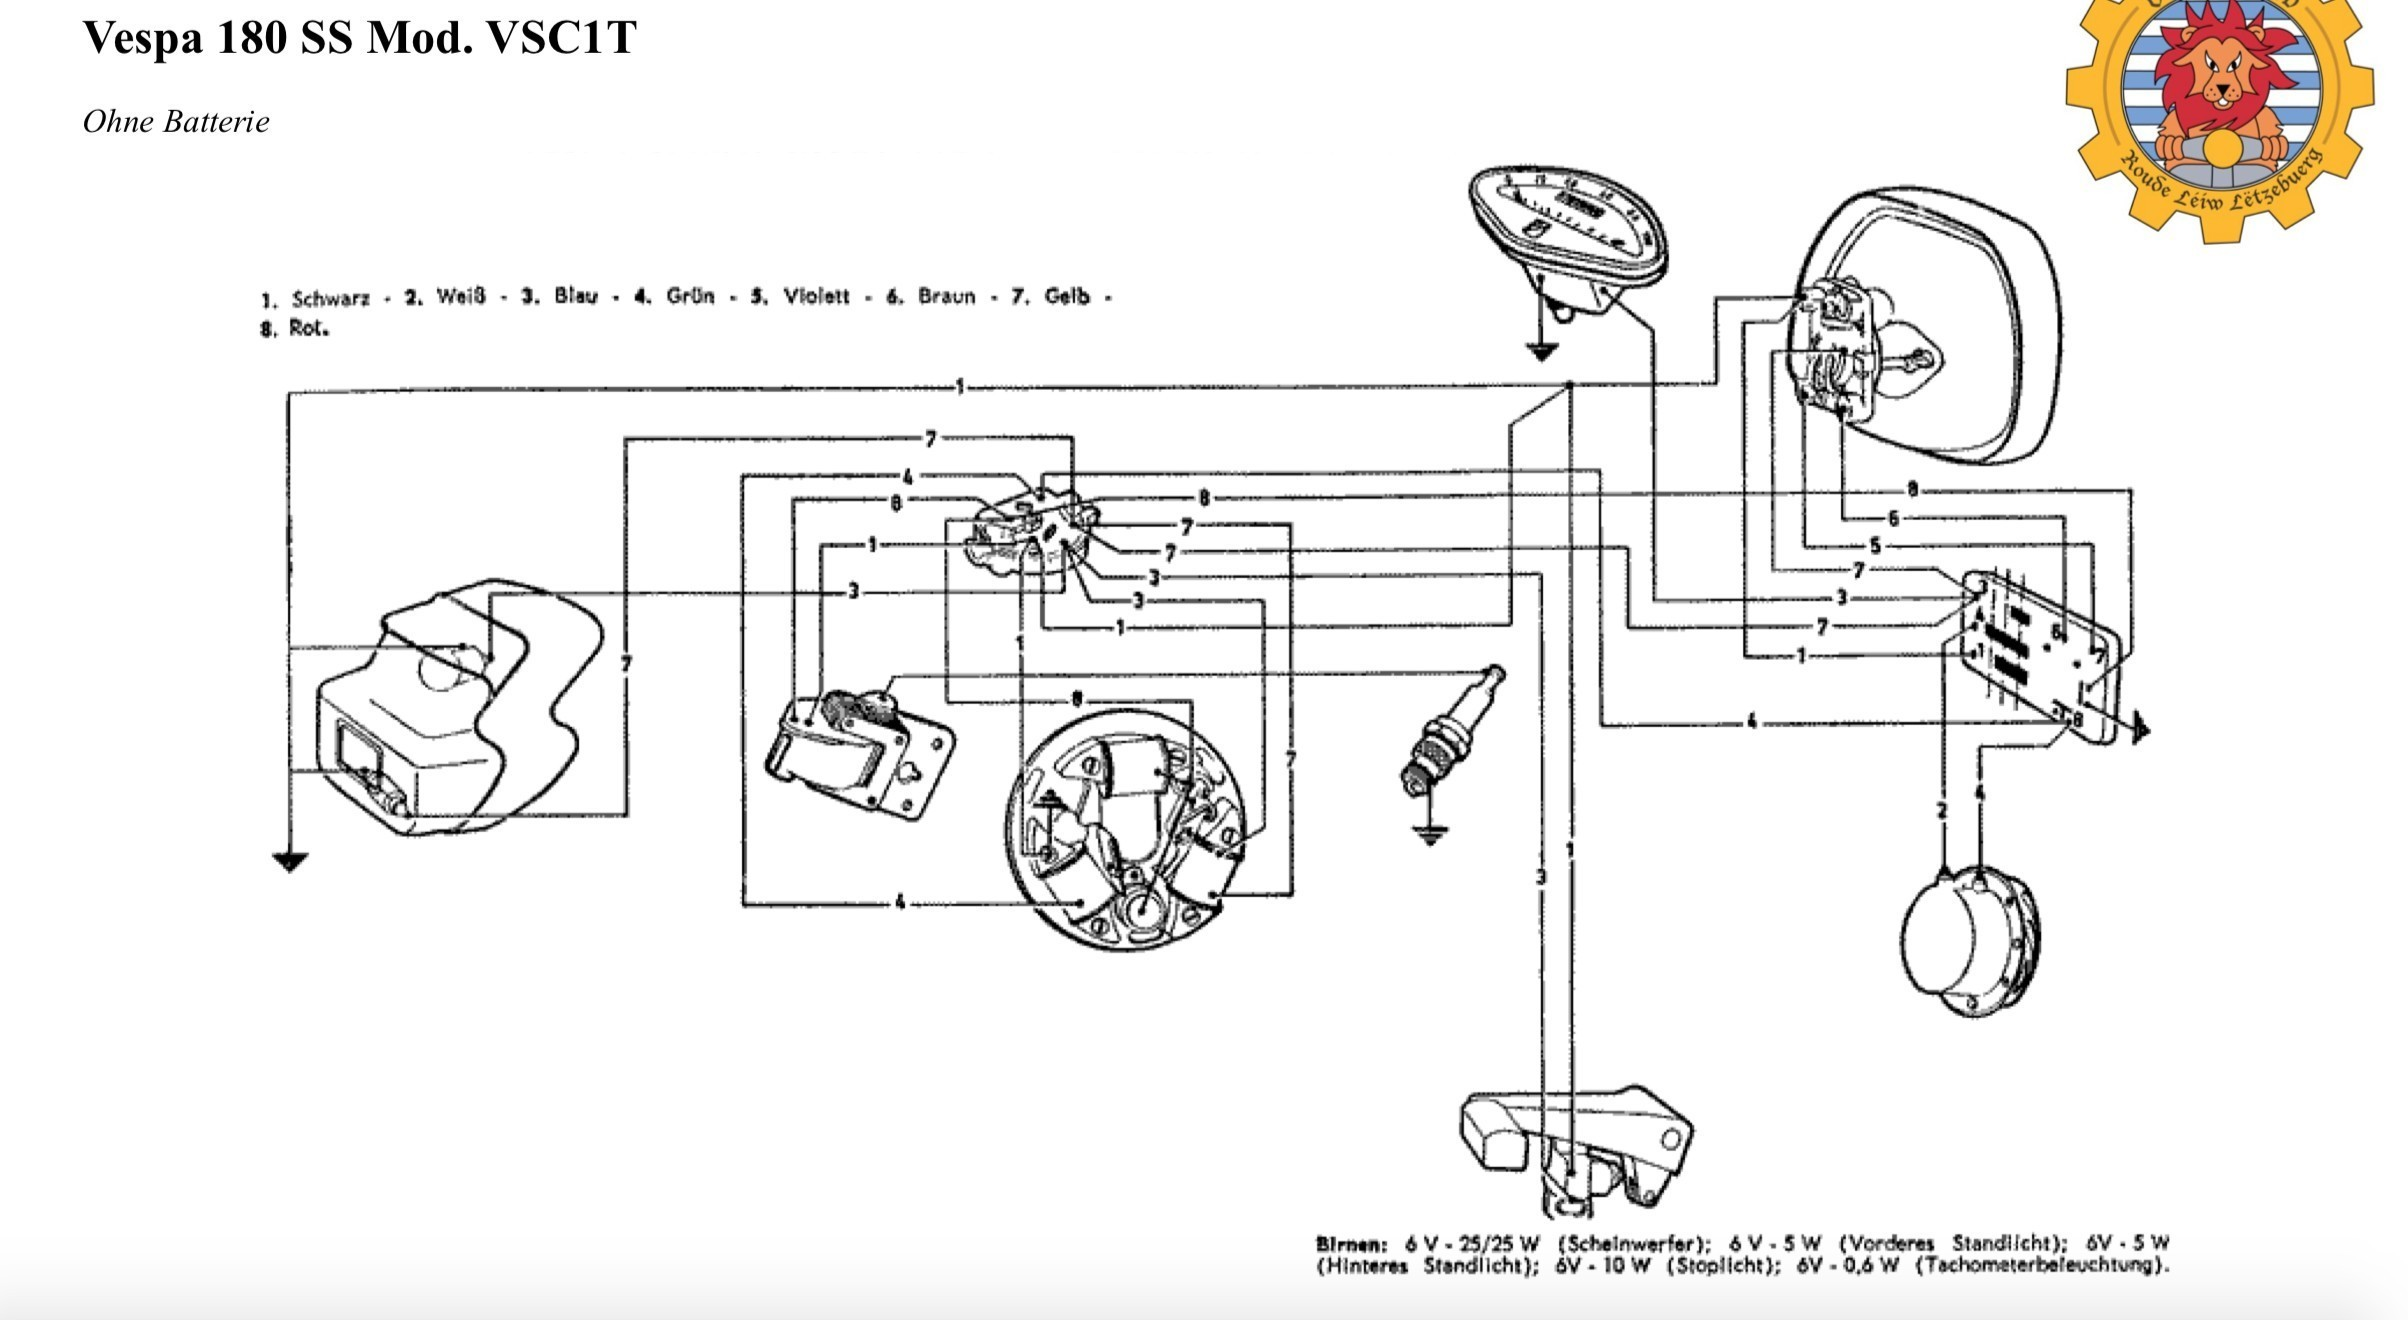 1995 Toyota Corolla Engine Diagram Wiring Library Camry 2002 Fresh 1997 Of